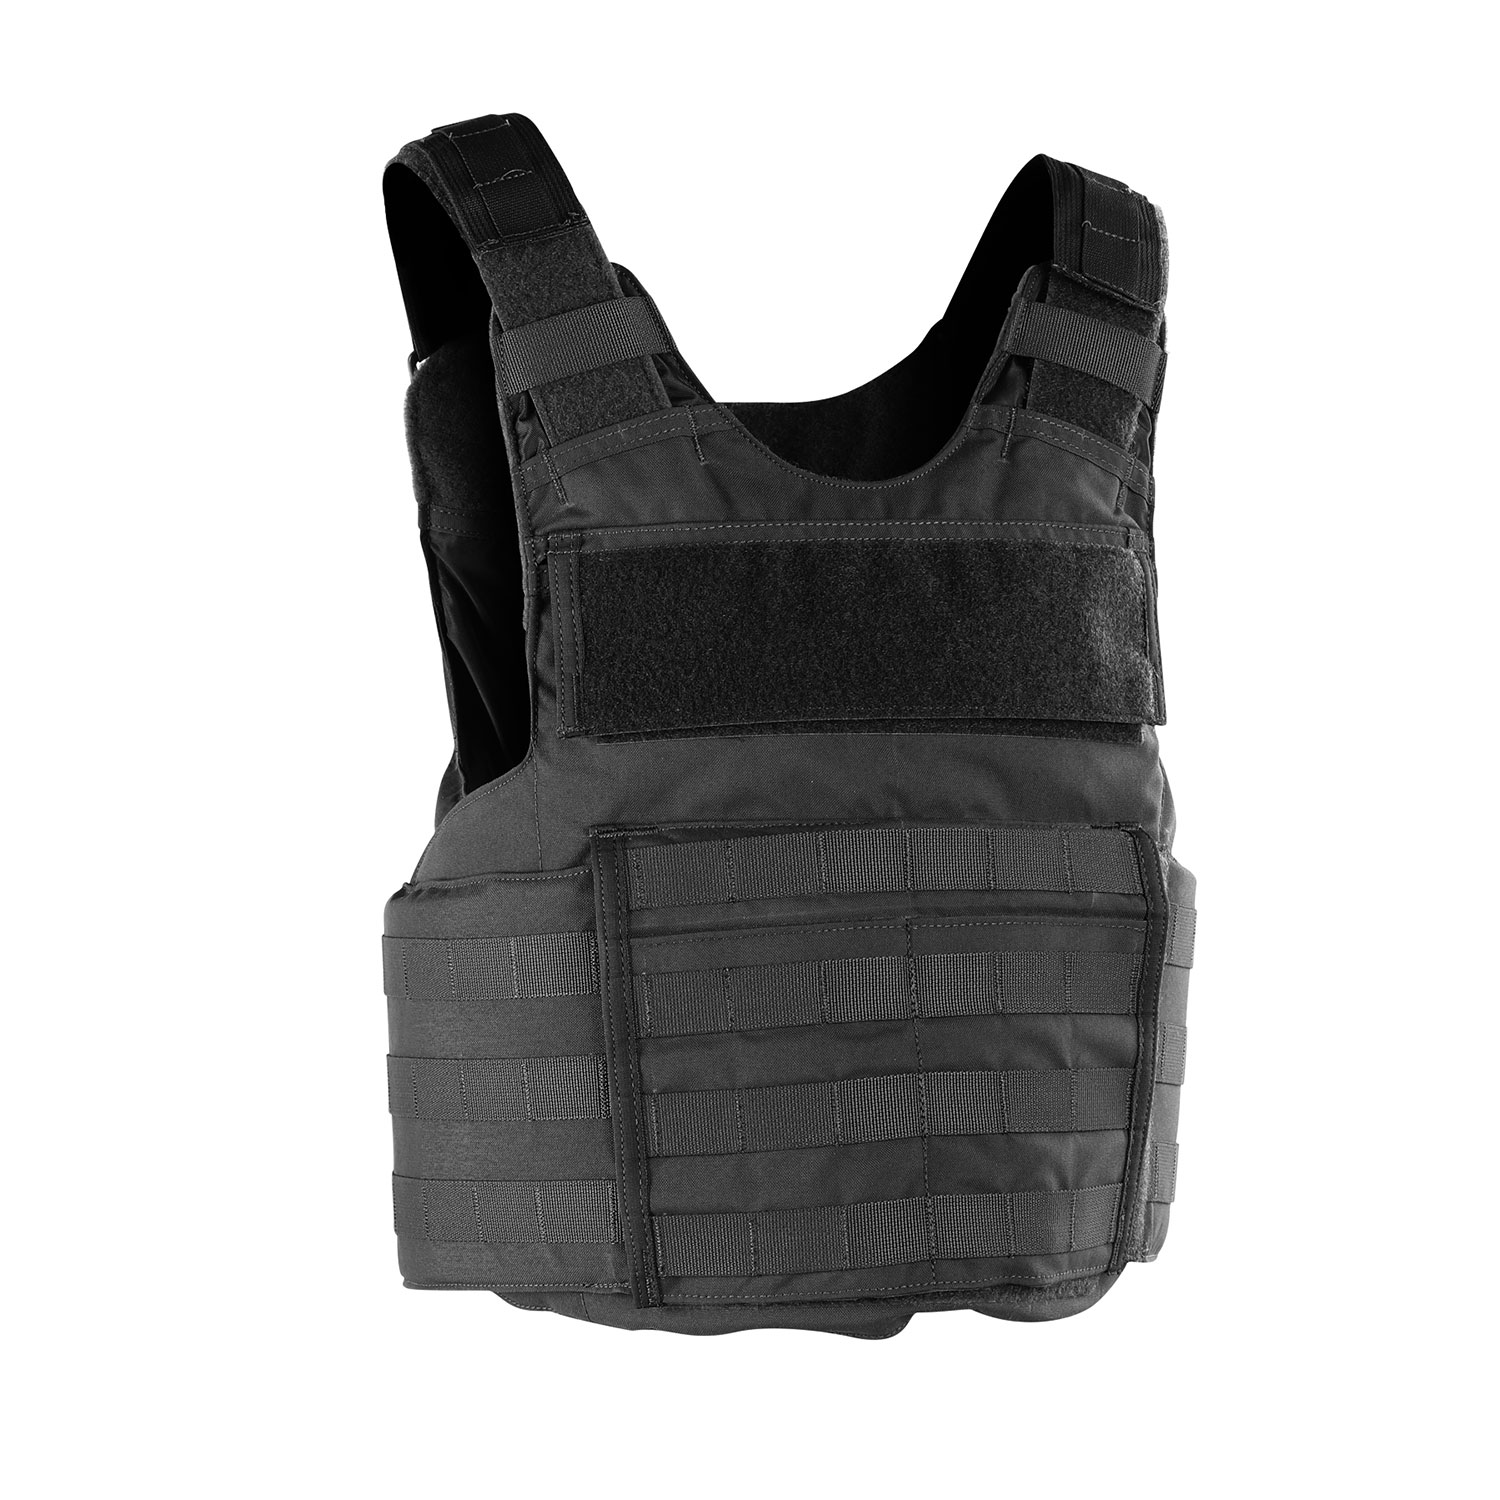 Galls G-TAC SMG 2 Level IIIA Tactical Base Vest